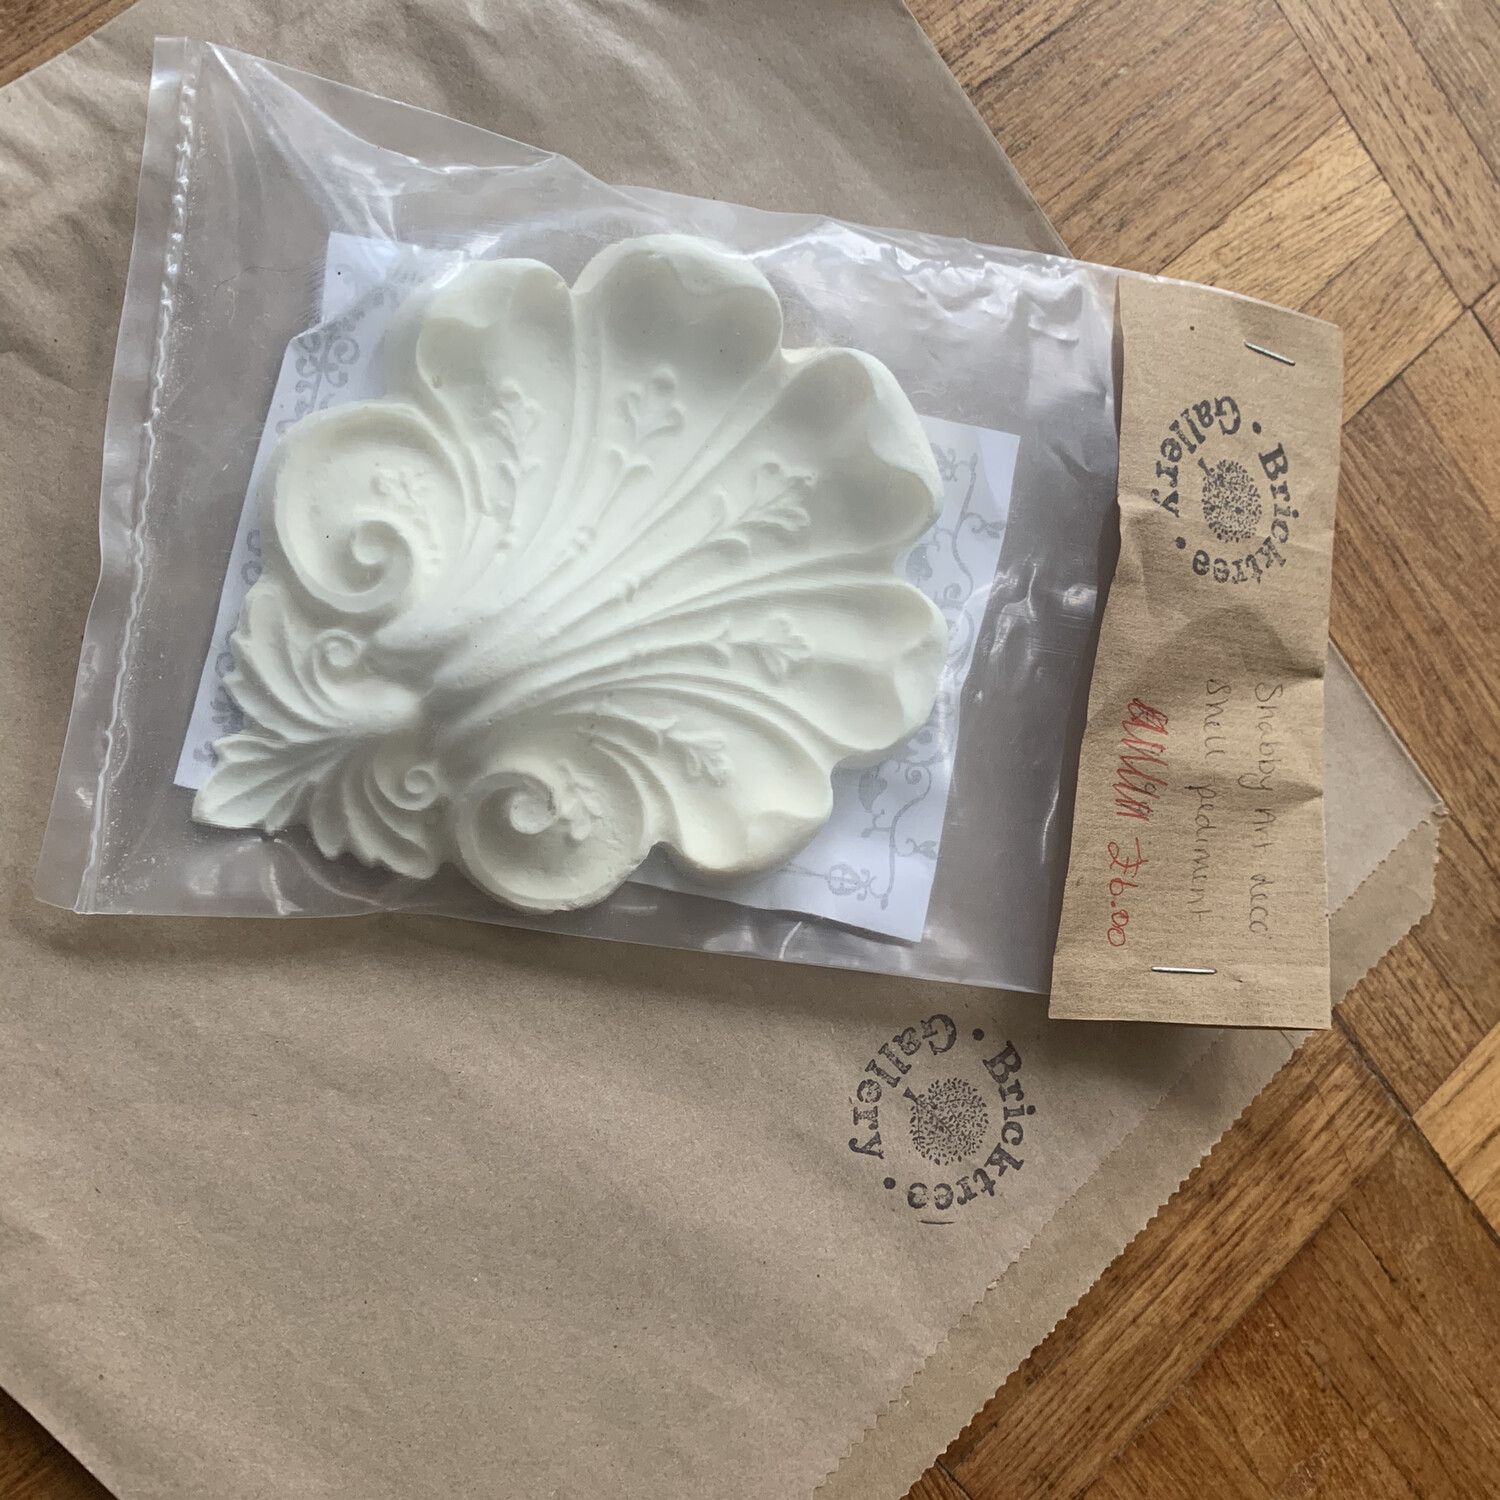 Bundle of Chic Mouldings - less than 1/2 price!